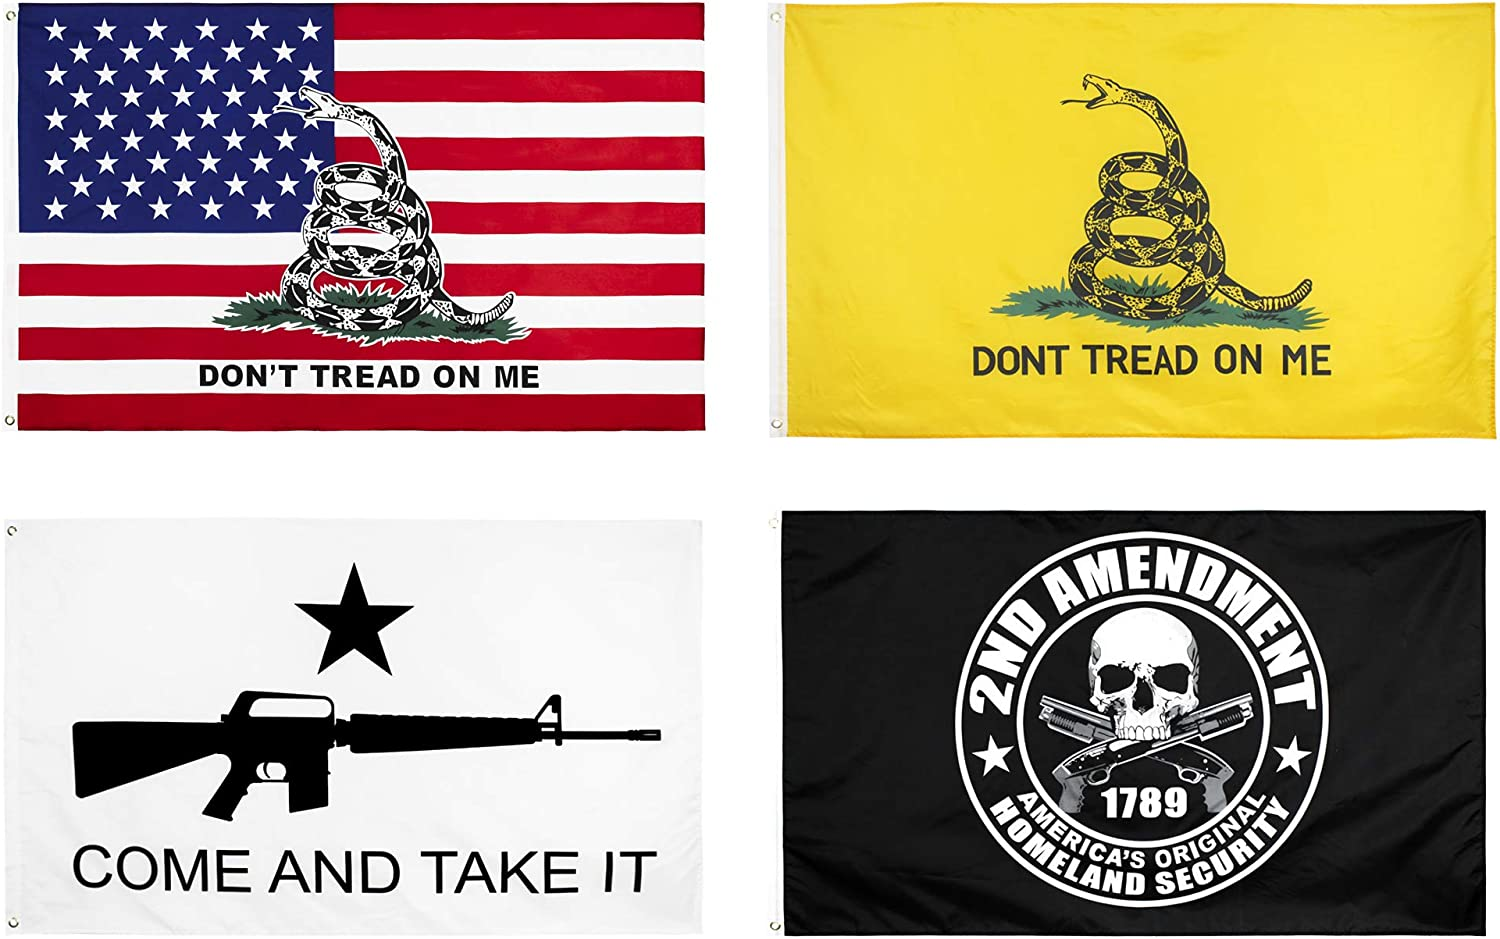 KENPMA 4 Pieces Gadsden American Flag - 2nd Amendment Flag - Come and Take It Flag - Dont Tread On Me Flag 3x5 ft with Grommets - Printed Polyester - Indoor/Outdoor - Vibrant Colors - Fade Resistant